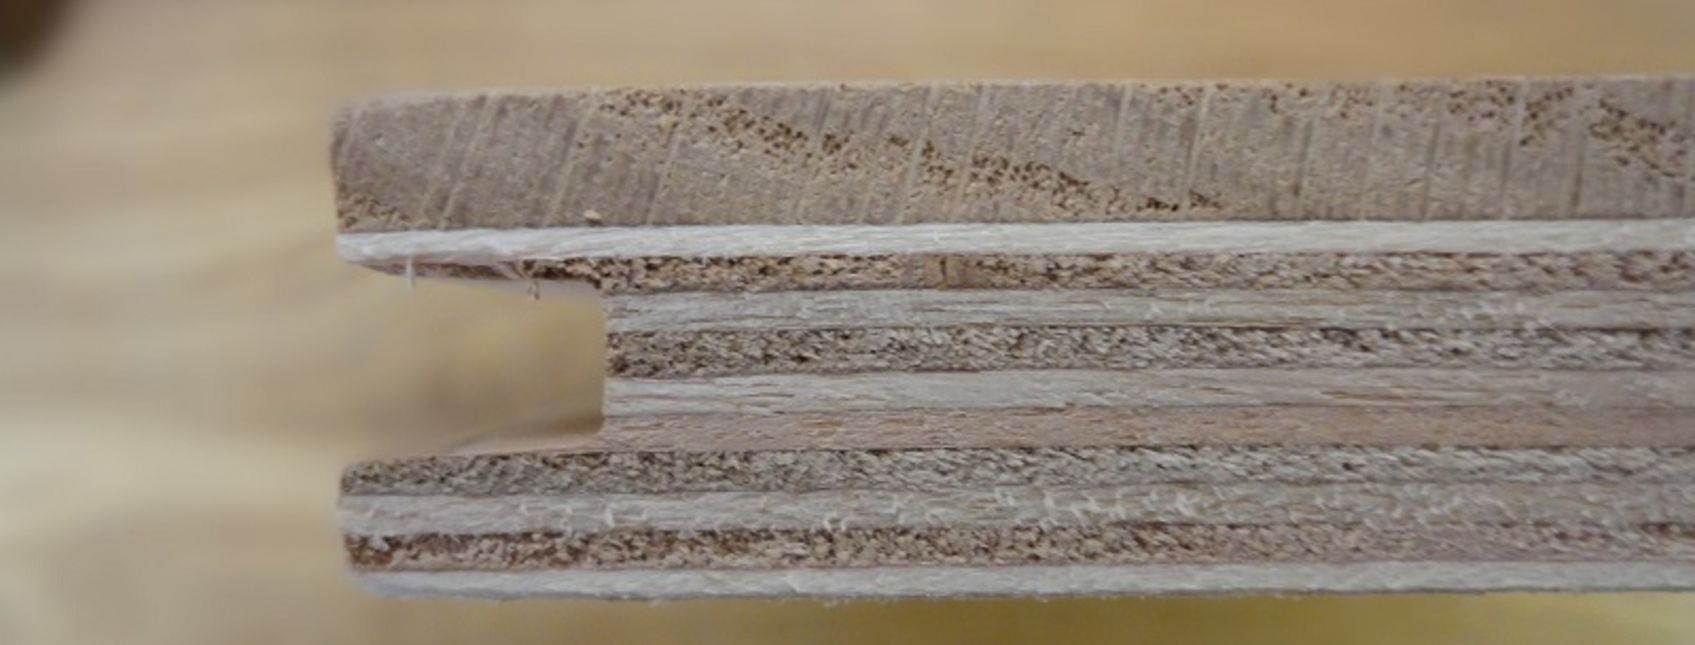 Image of layers used in the best engineered wood flooring